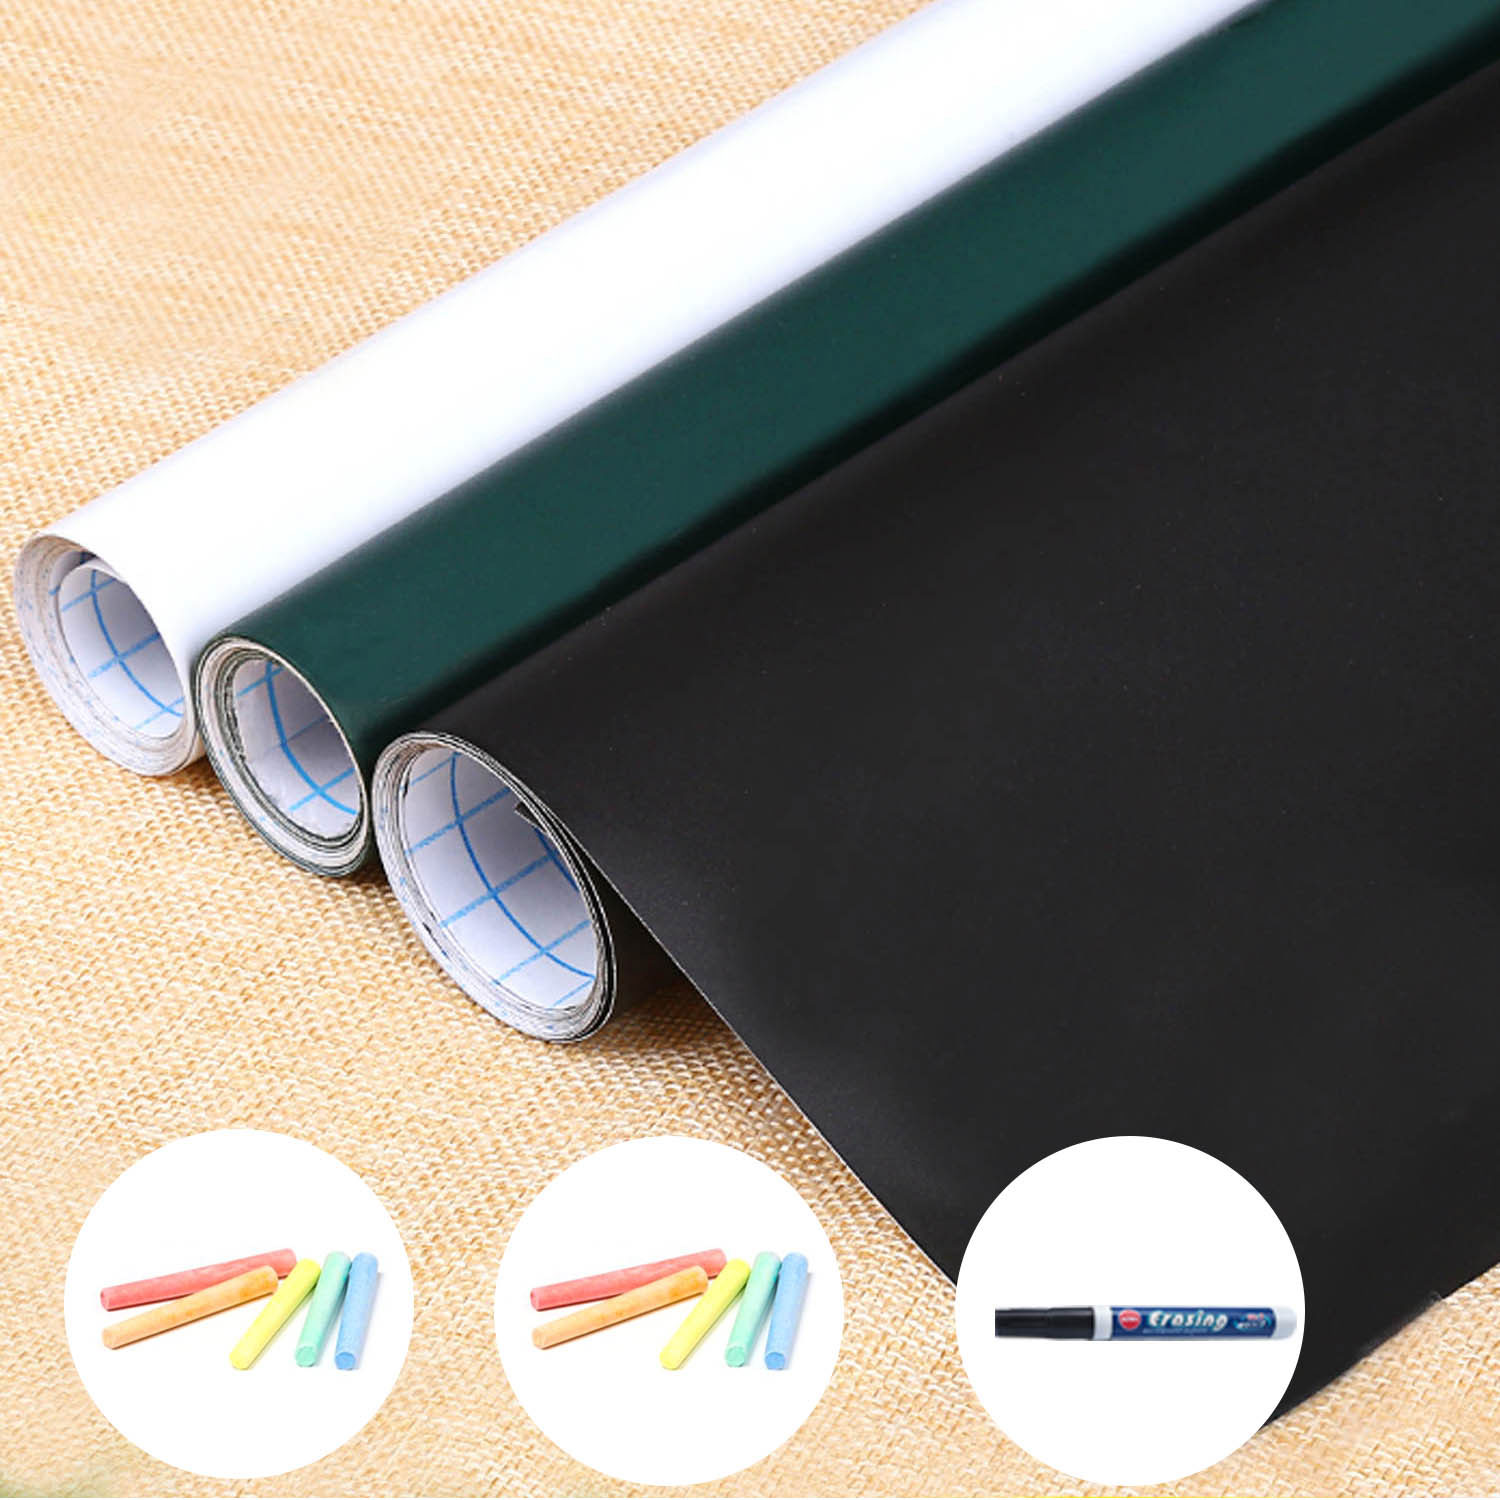 200x60cm Blackboard Wall Sticker Removable Chalkboard Self-Adhesive Message Paper Decal Sticker For Office School Supplies